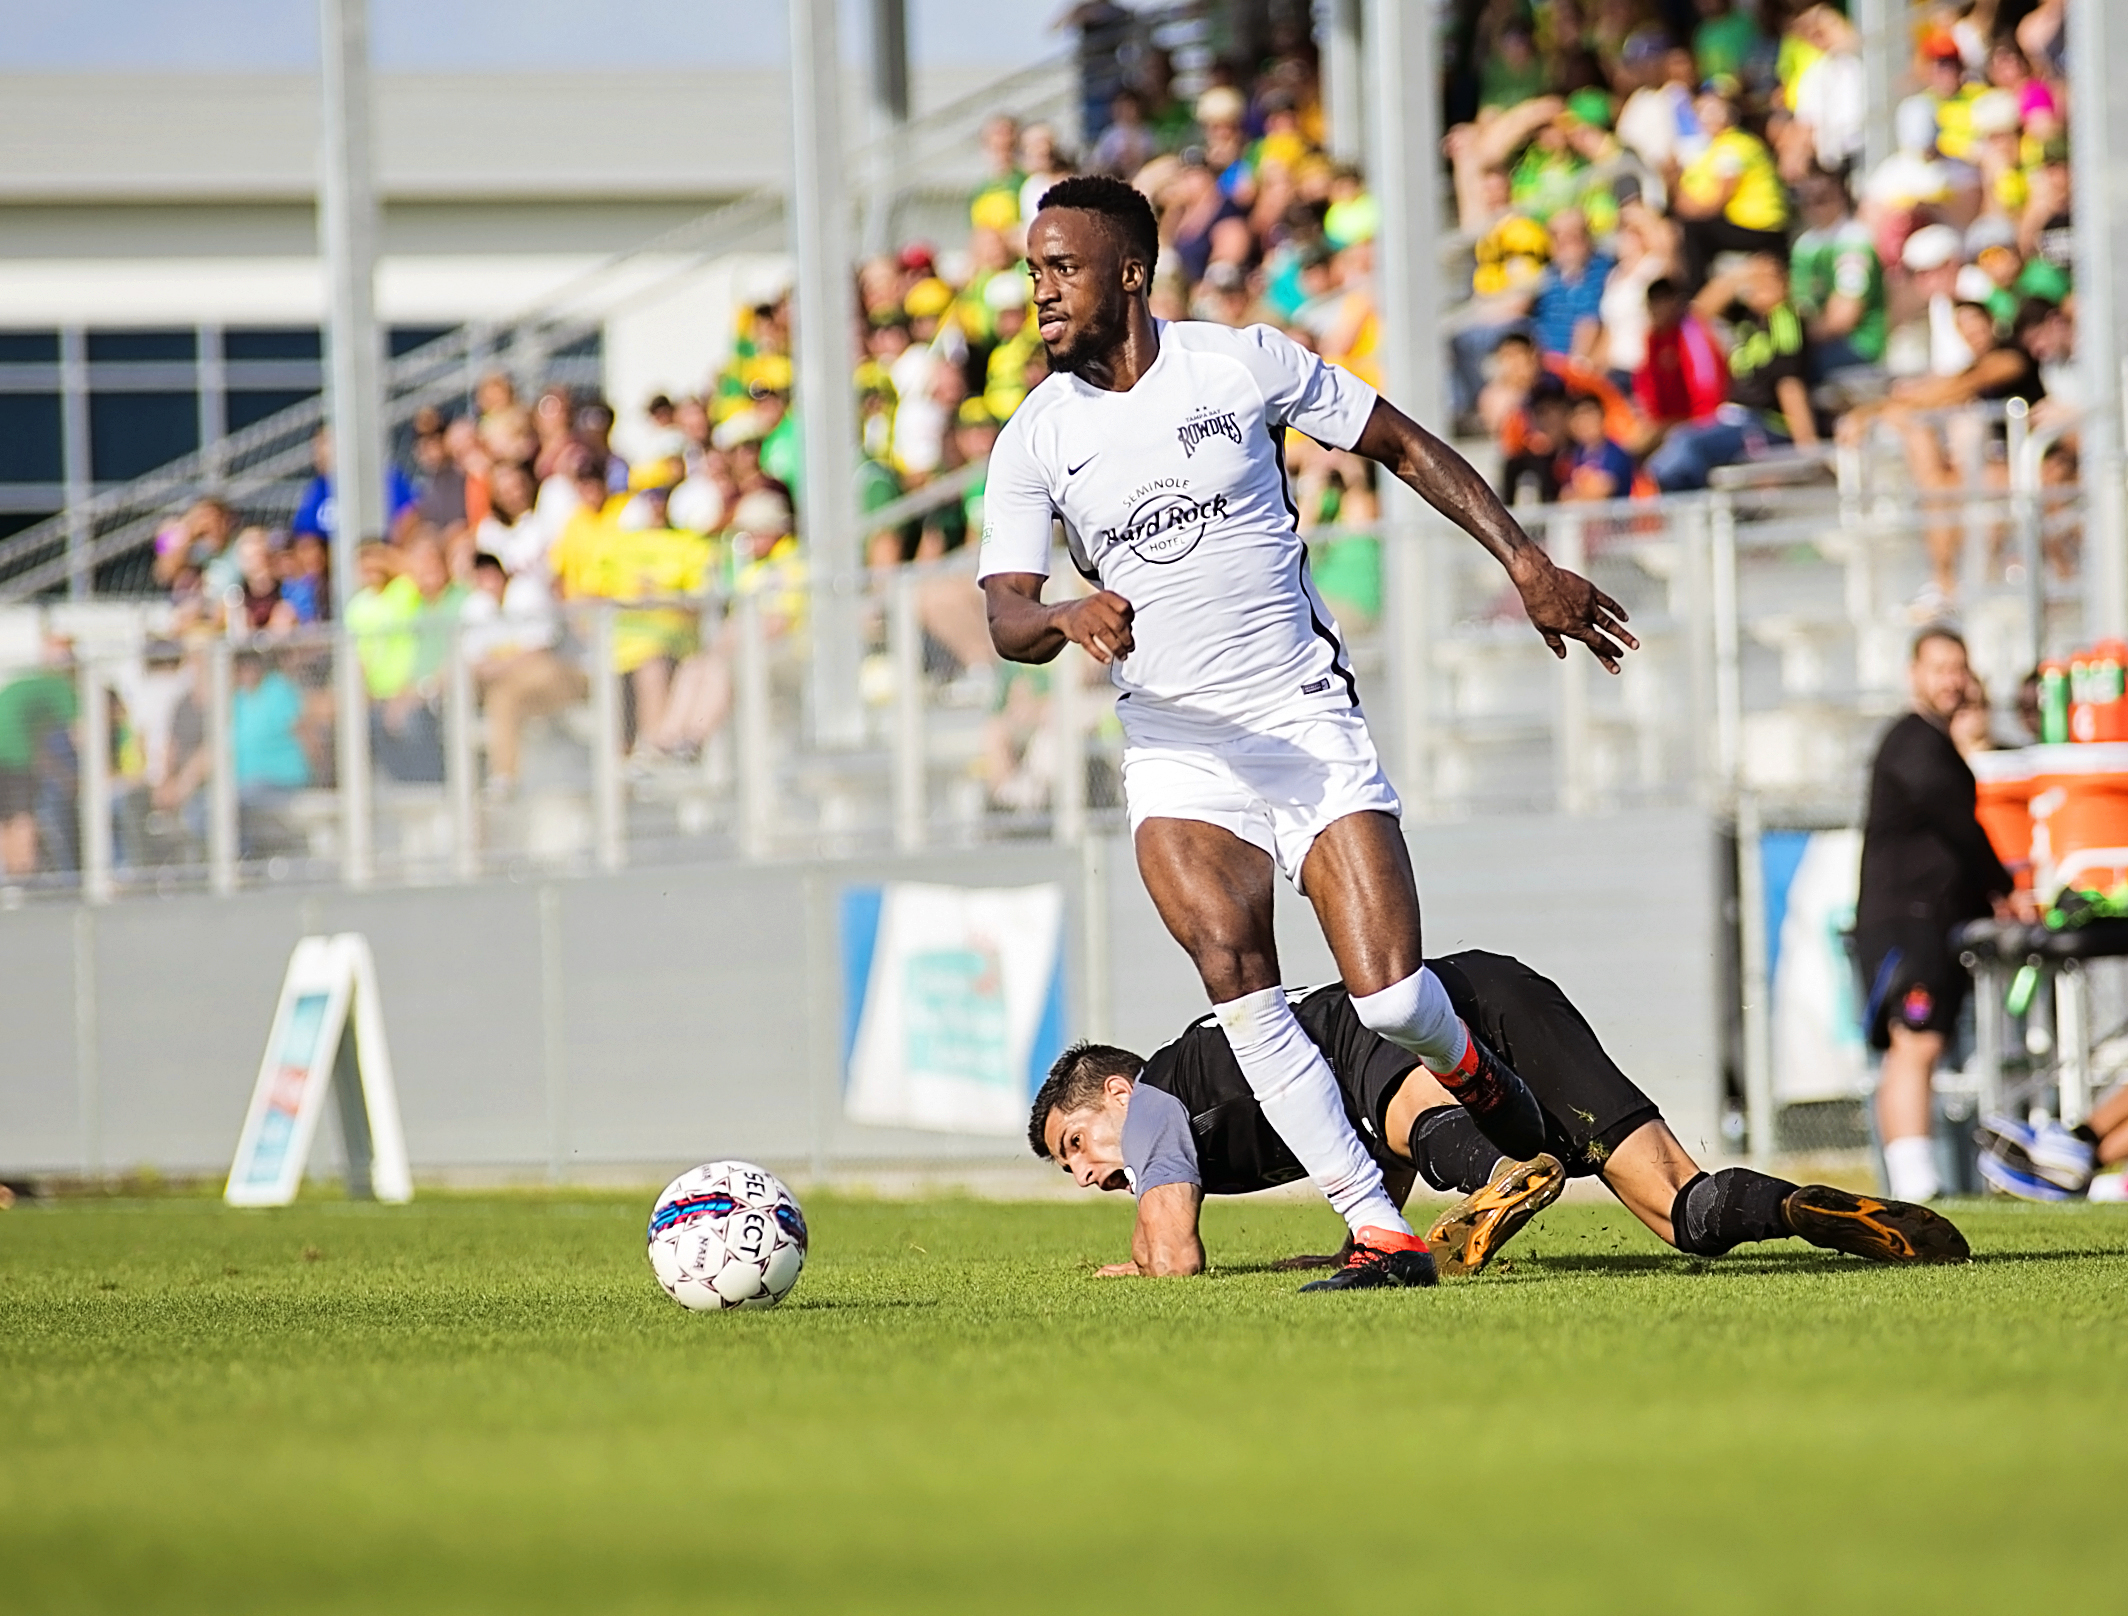 Junior Fellings heads upfield for the Rowdies./CARMEN MANDATO